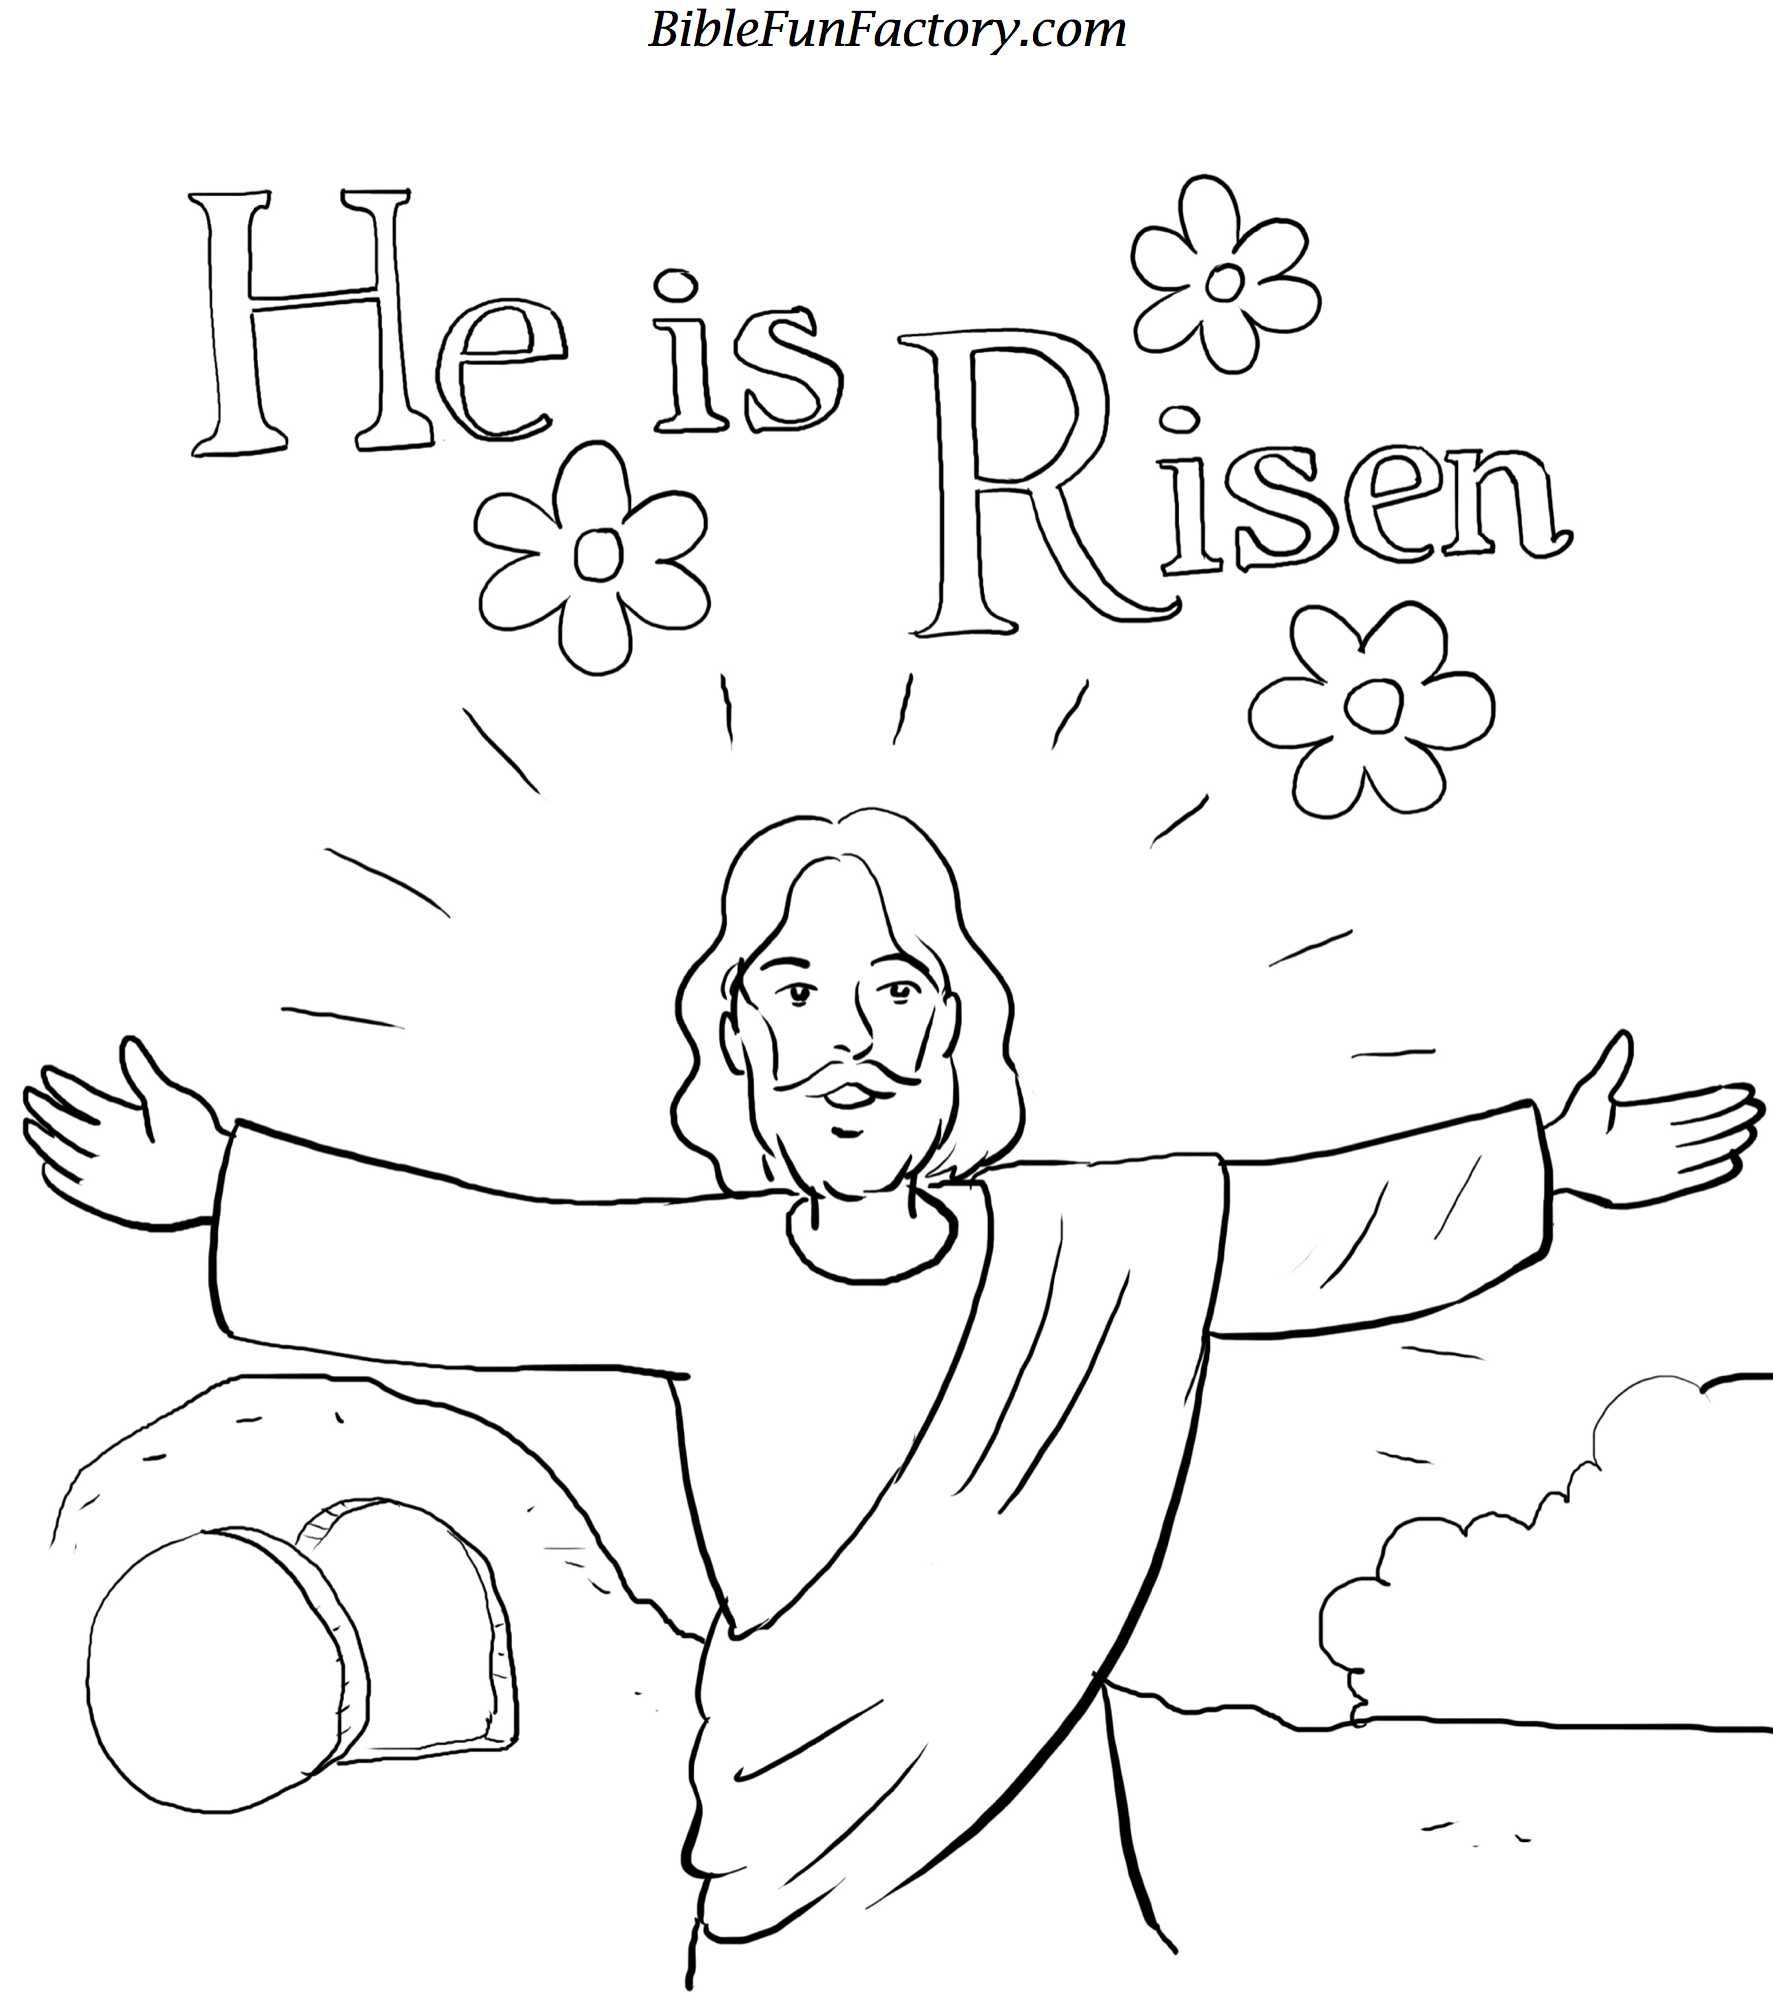 Eastercoloring Jpg 1 773 2 000 Pixels Sunday School Coloring Pages Jesus Coloring Pages Easter Sunday School